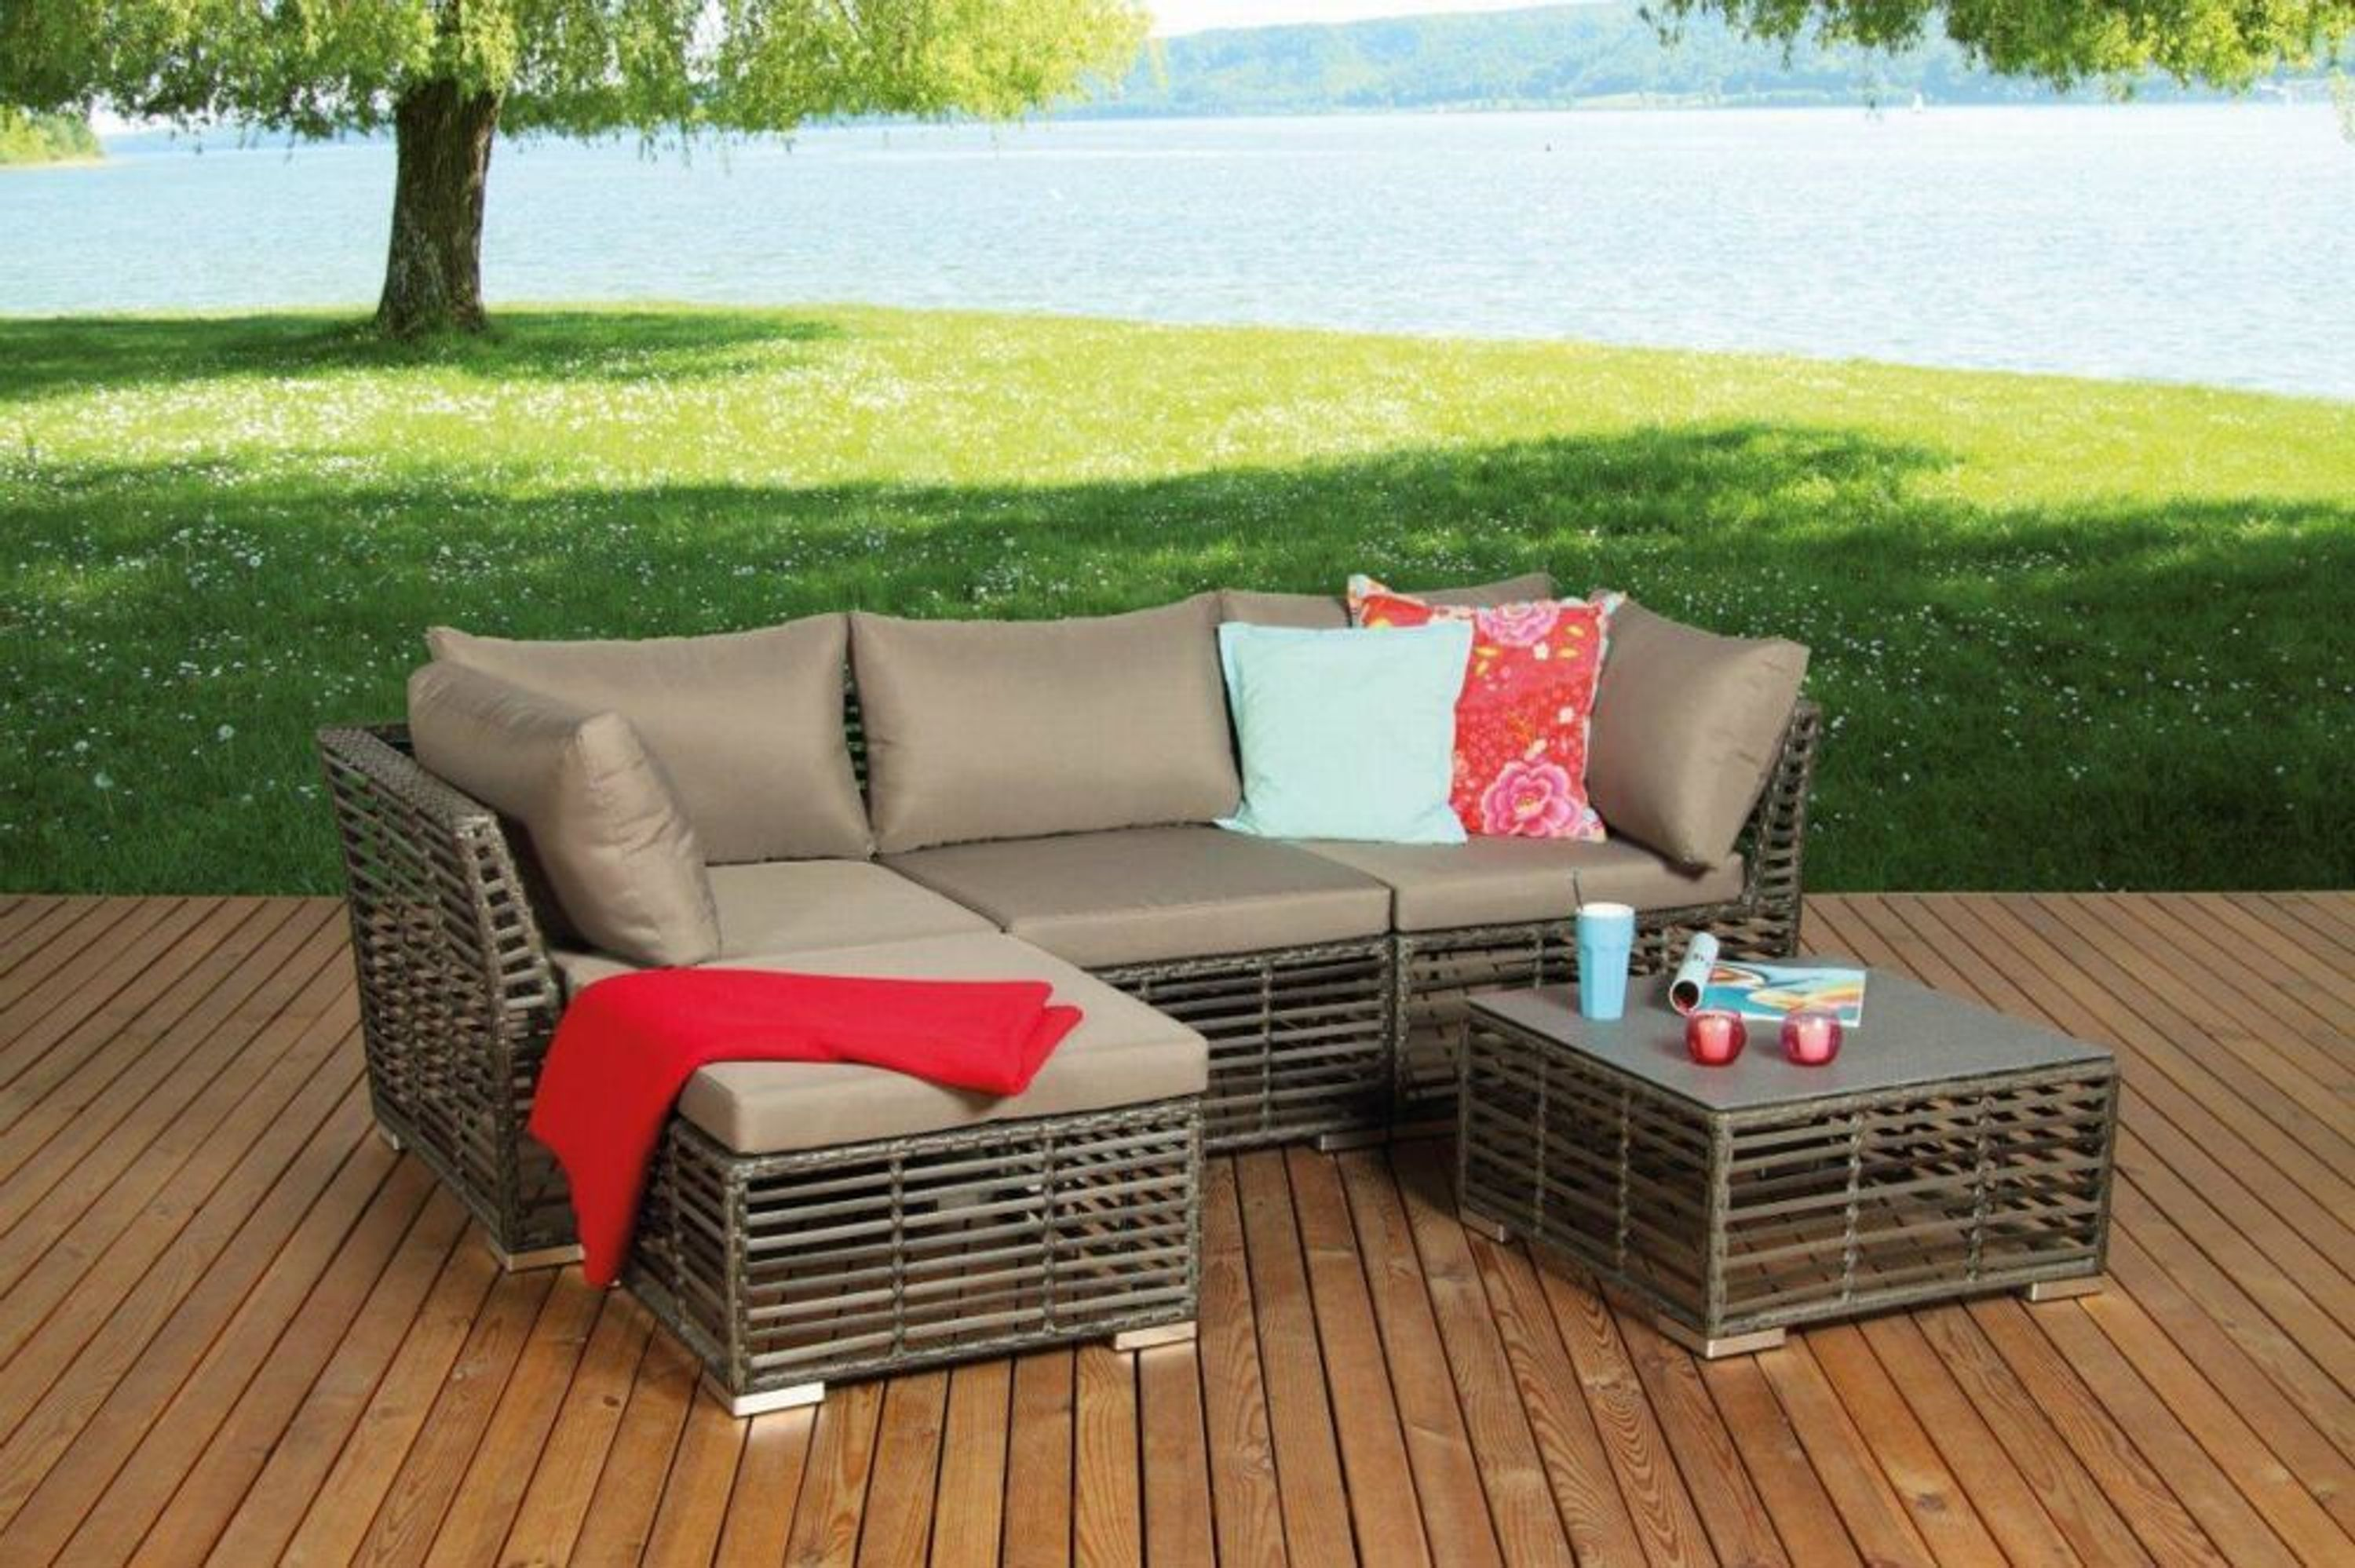 582654 wohnset gartenset 5tlg korfu ii garten lounge set ecksofa und tisch kaufen bei. Black Bedroom Furniture Sets. Home Design Ideas